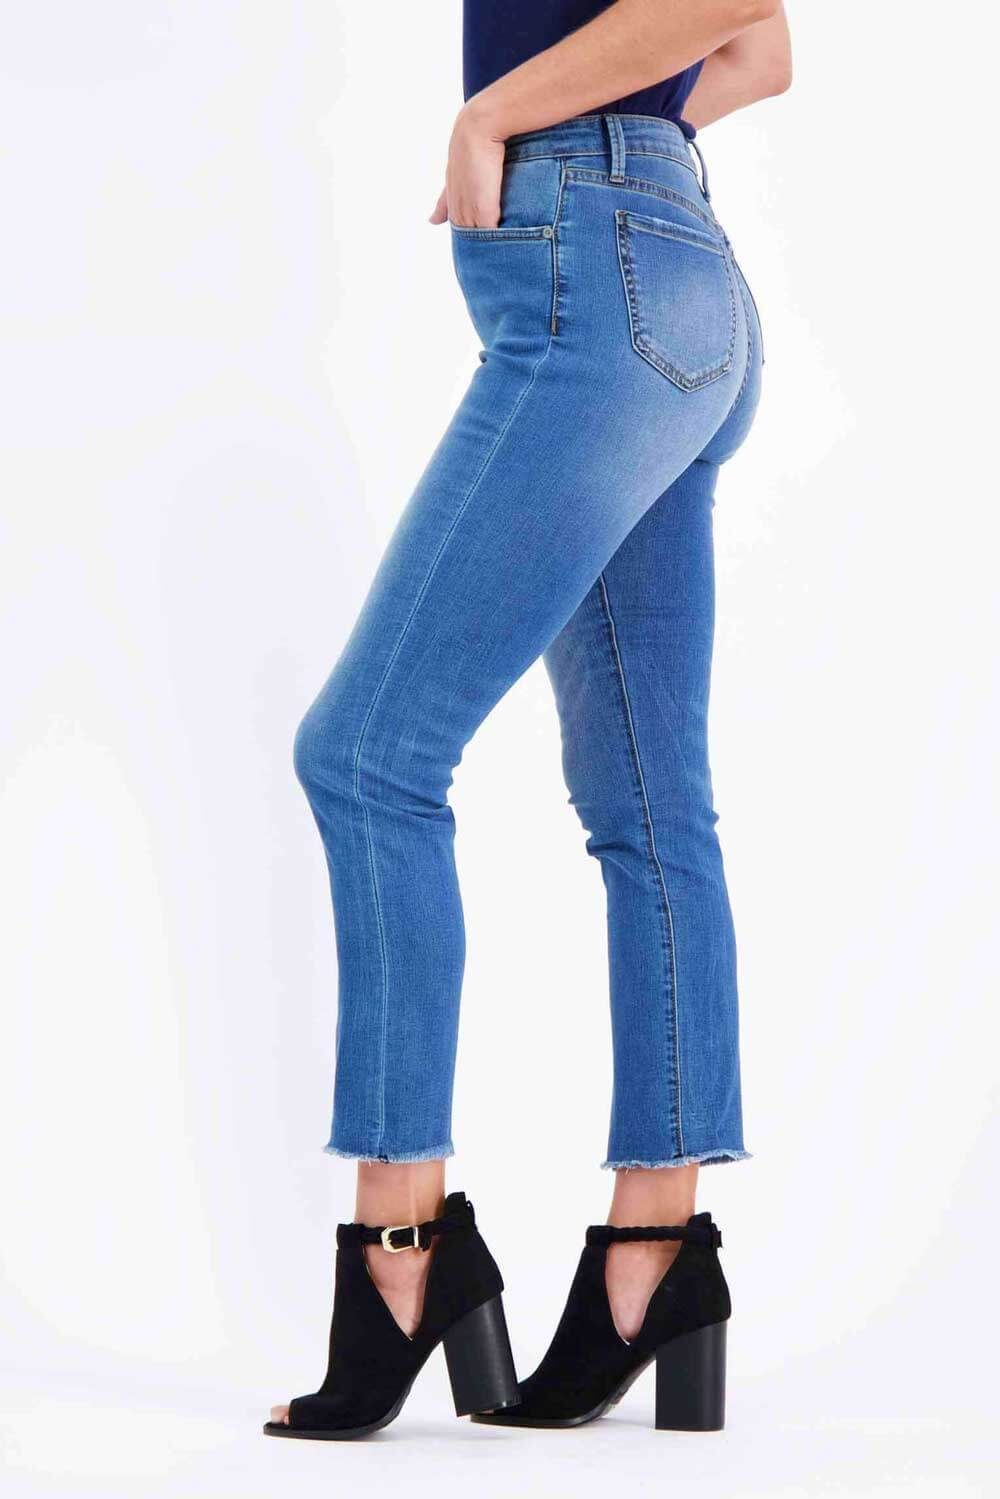 Milk Money High-Rise Slim Jeans Blue Side - MILK MONEY